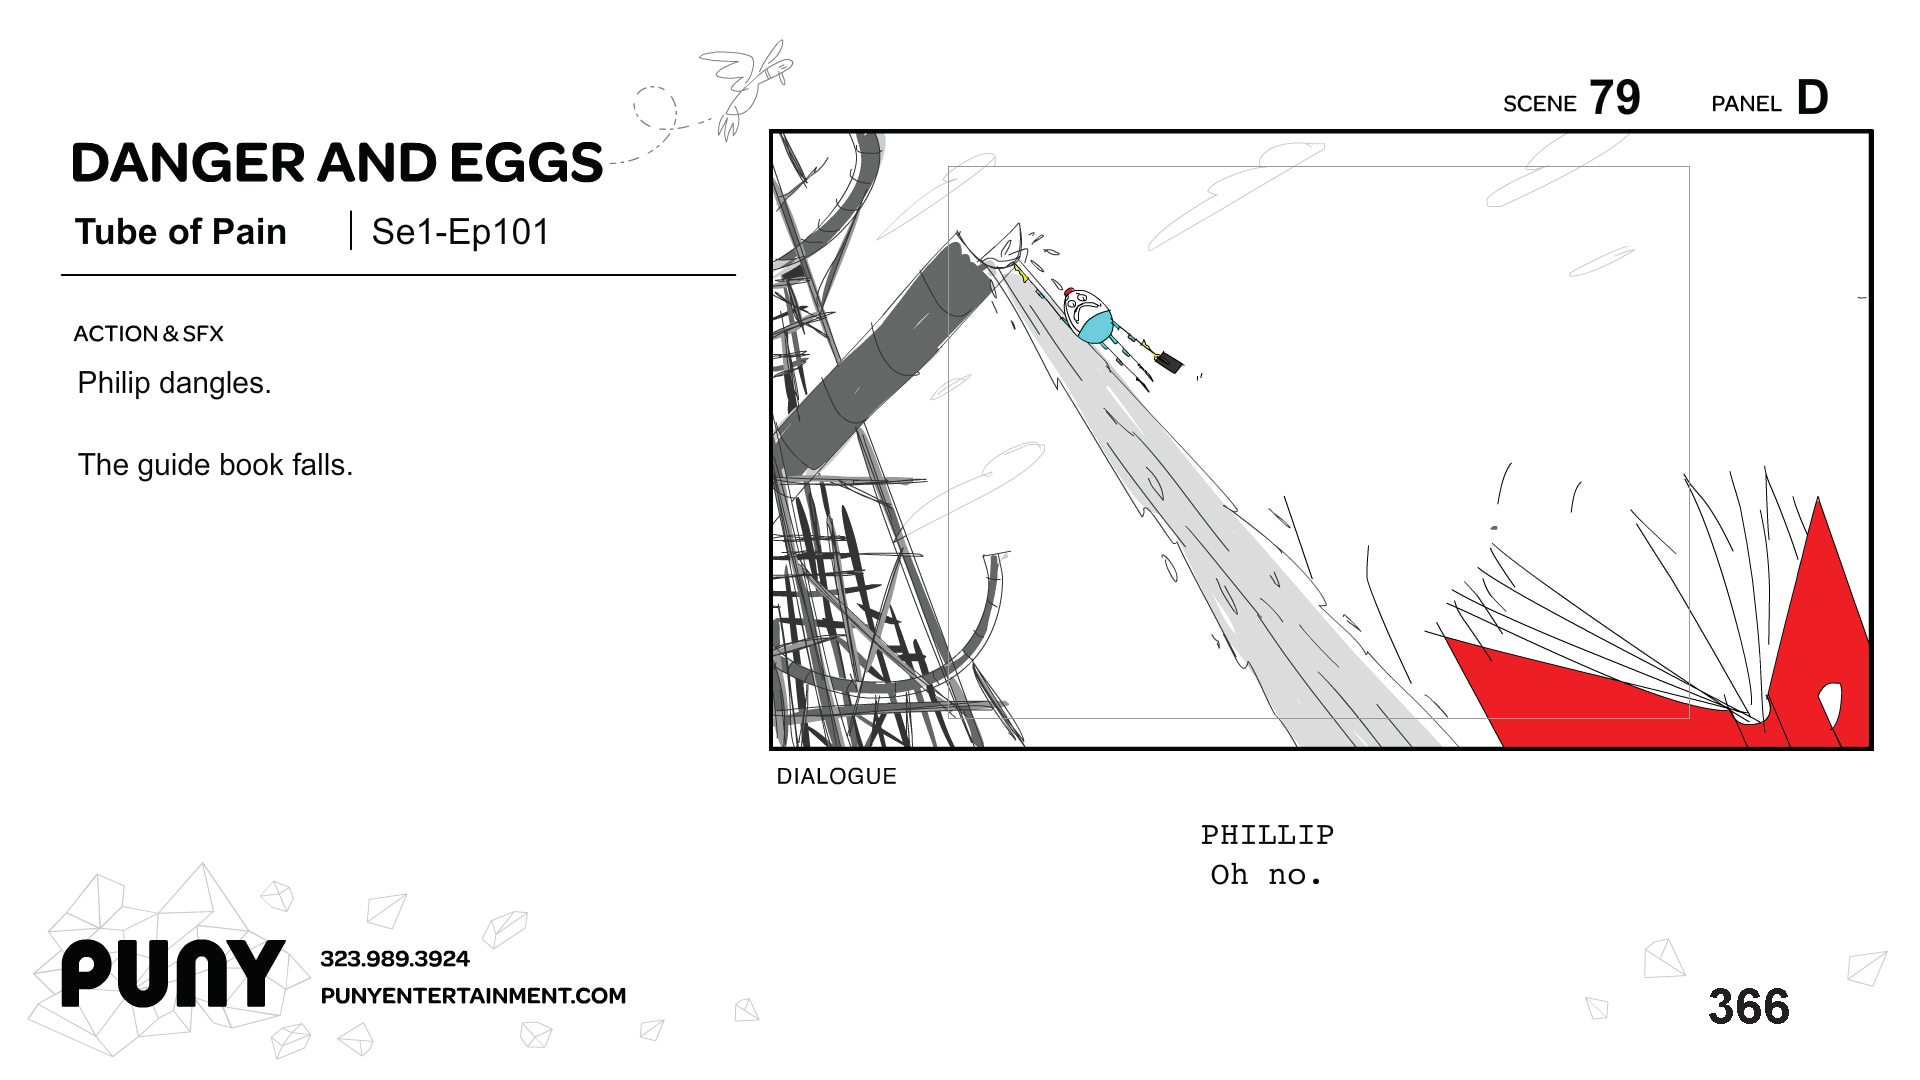 MikeOwens_STORYBOARDS_DangerAndEggs_Page_261.png